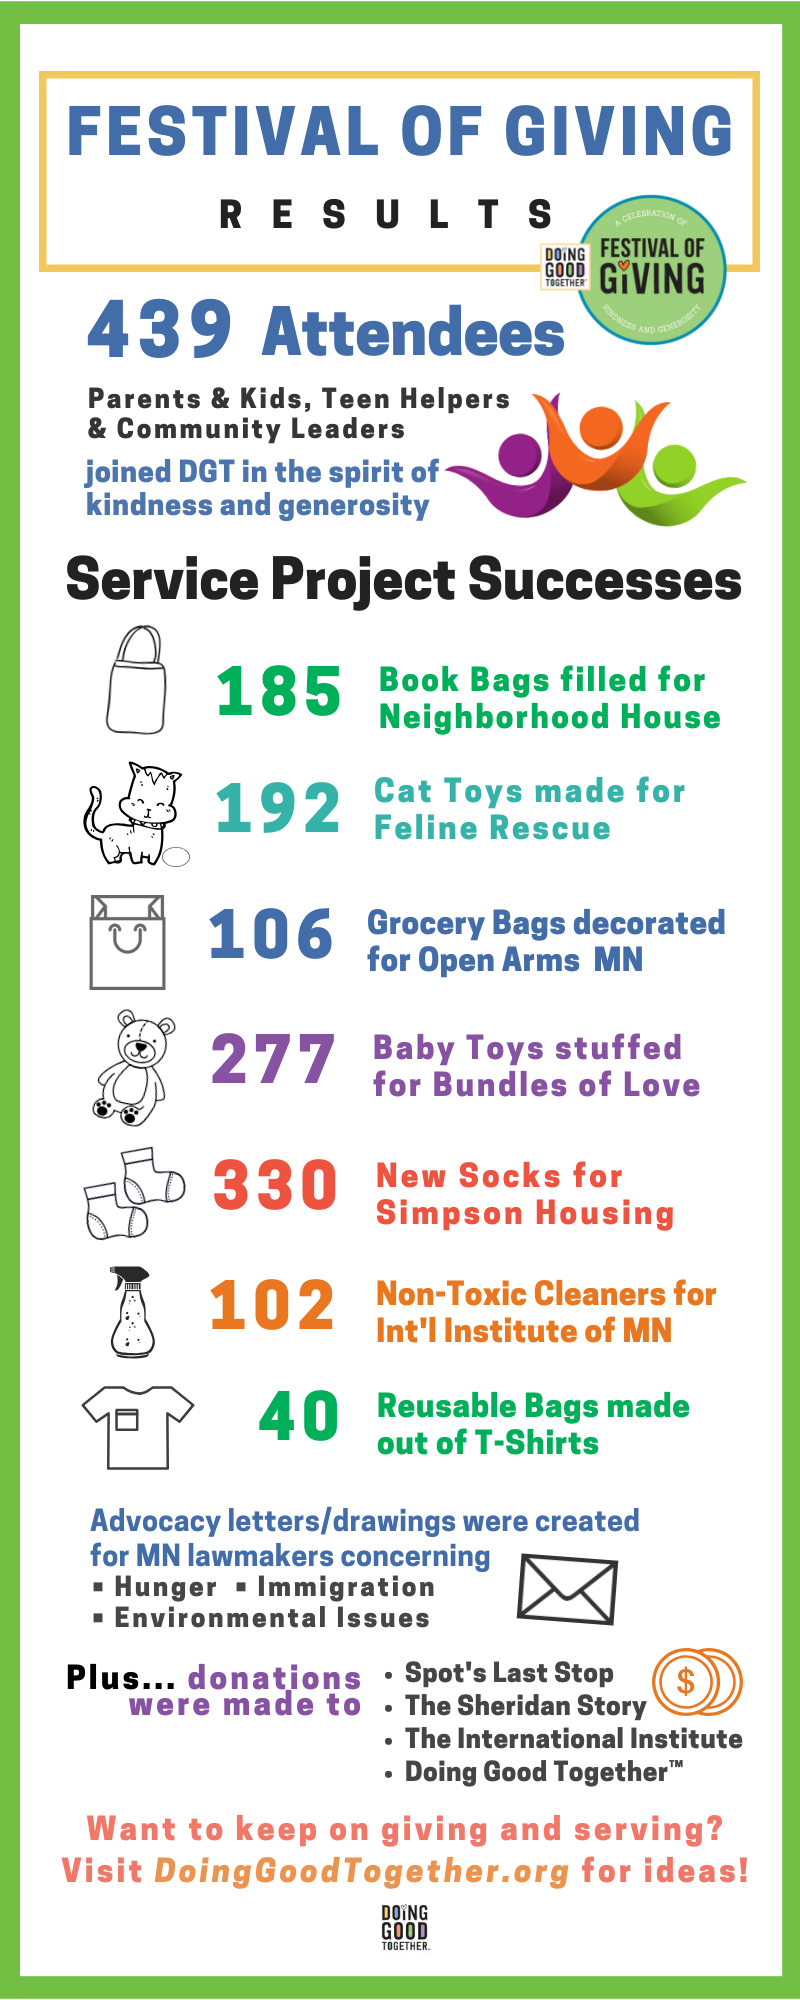 Check out the results of our Sept. 30th Festival of Giving, and see for yourself how much of a positive impact we can make when we work together for others!